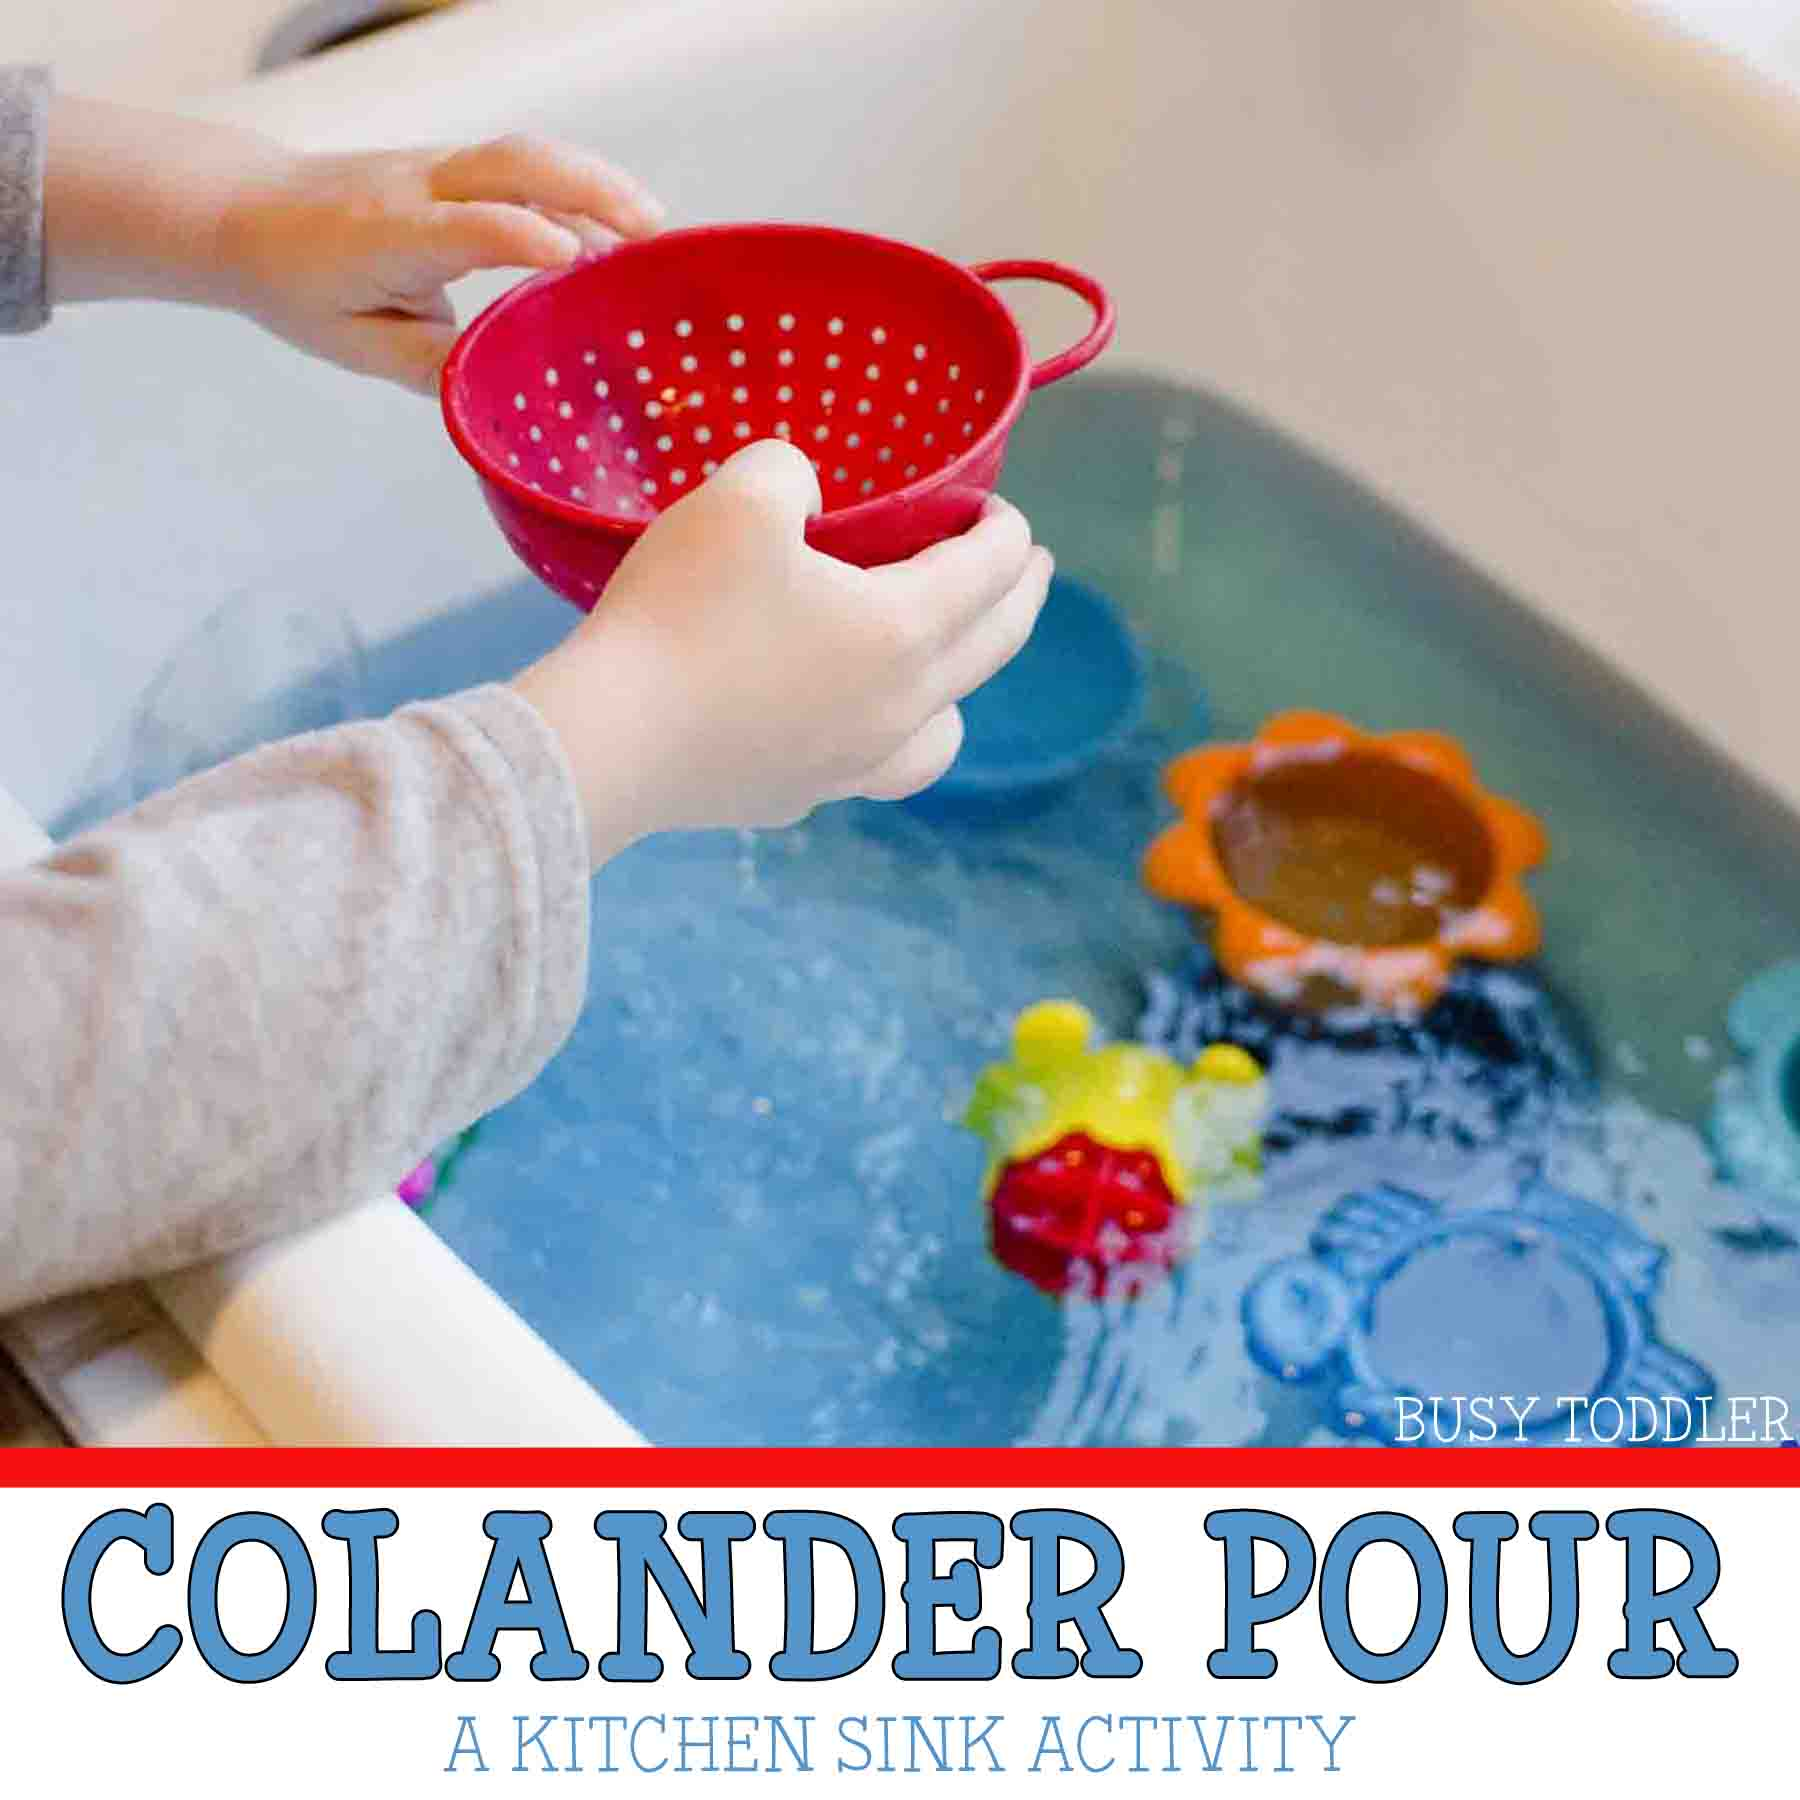 Colander Pour in the Kitchen Sink - Busy Toddler